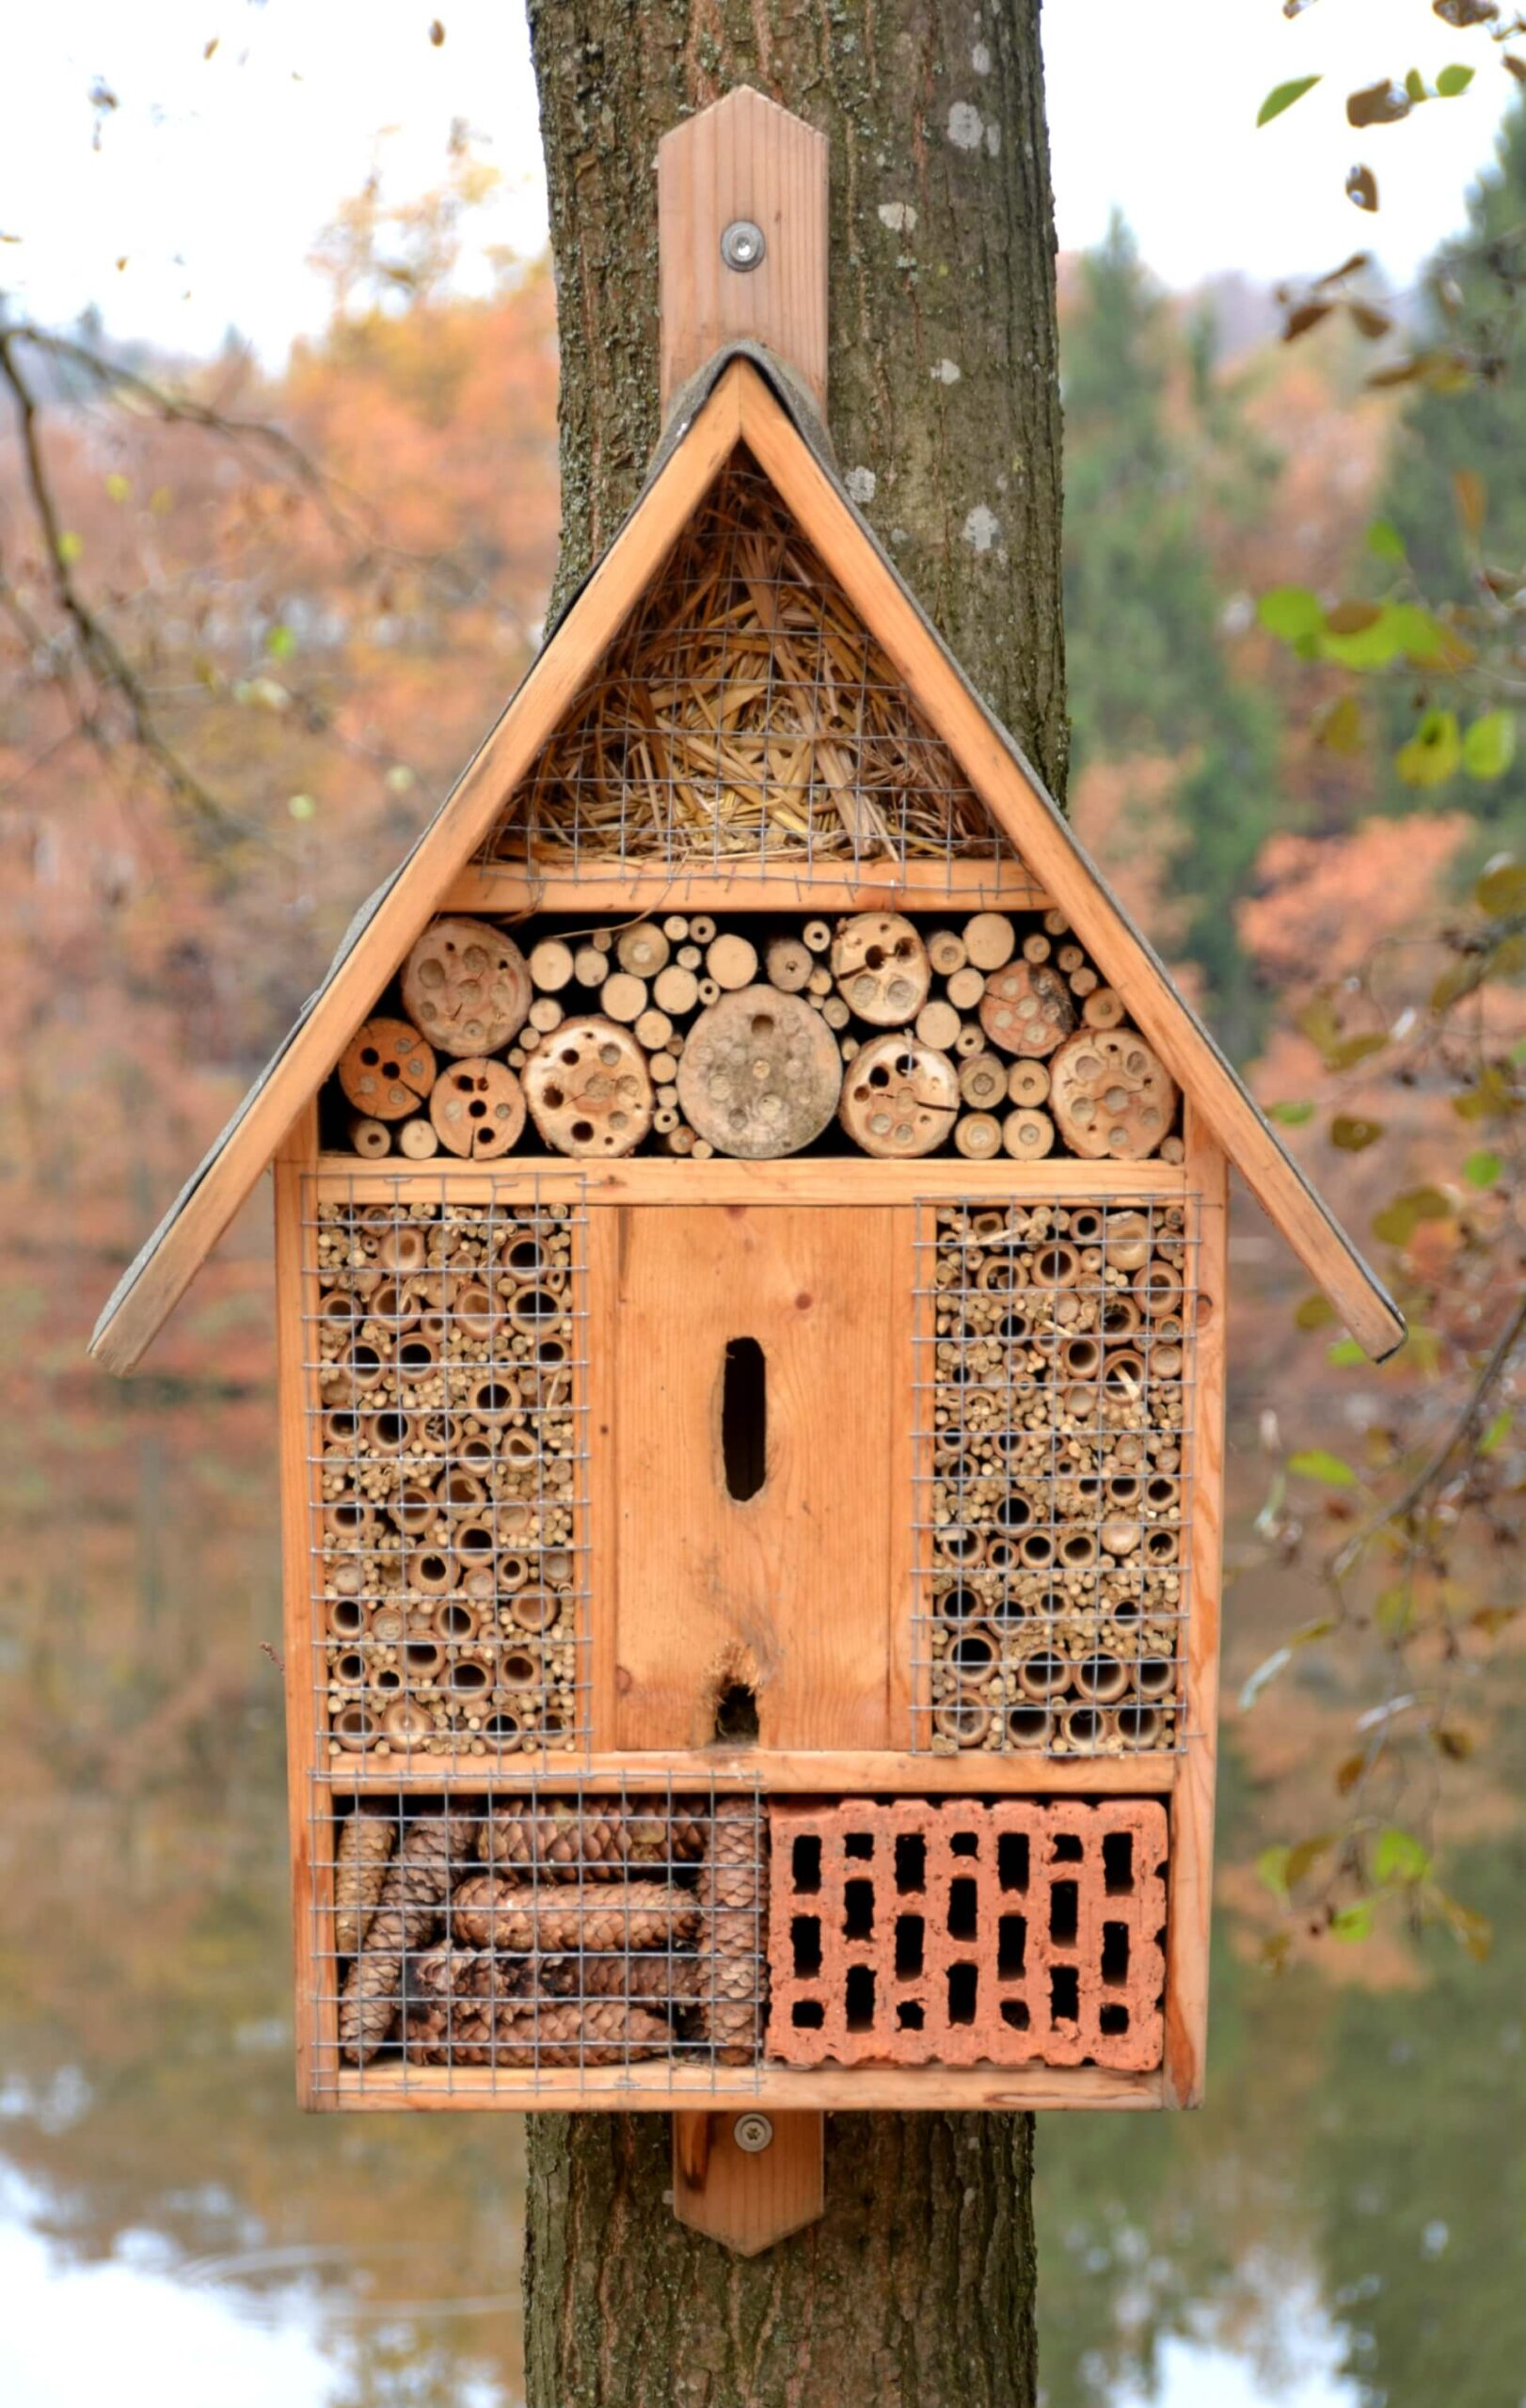 Building Insects Hotels